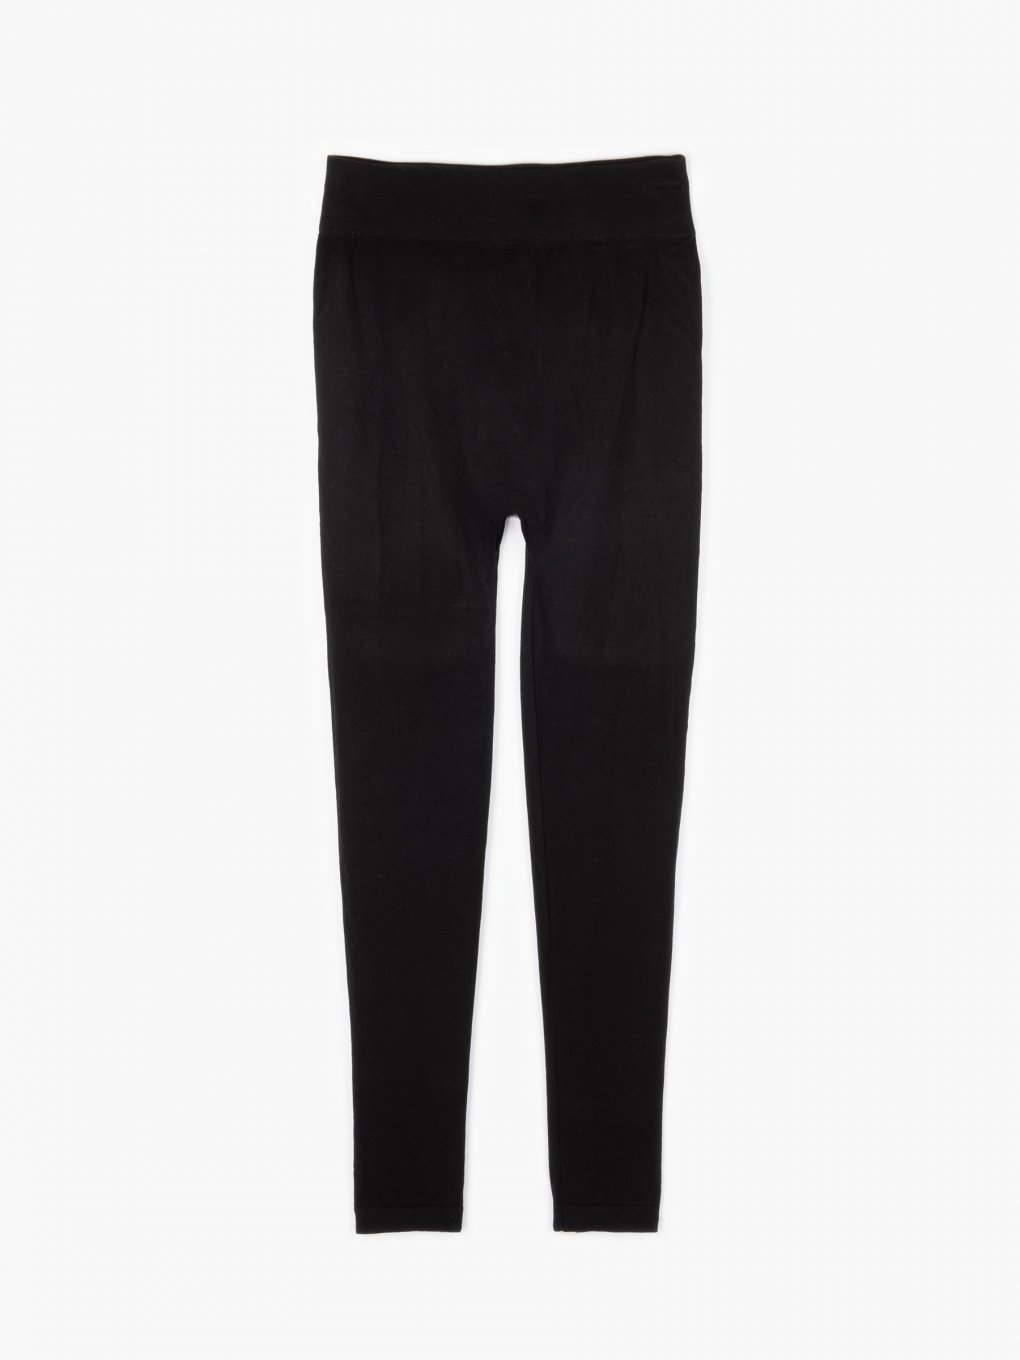 Basic high waisted leggings